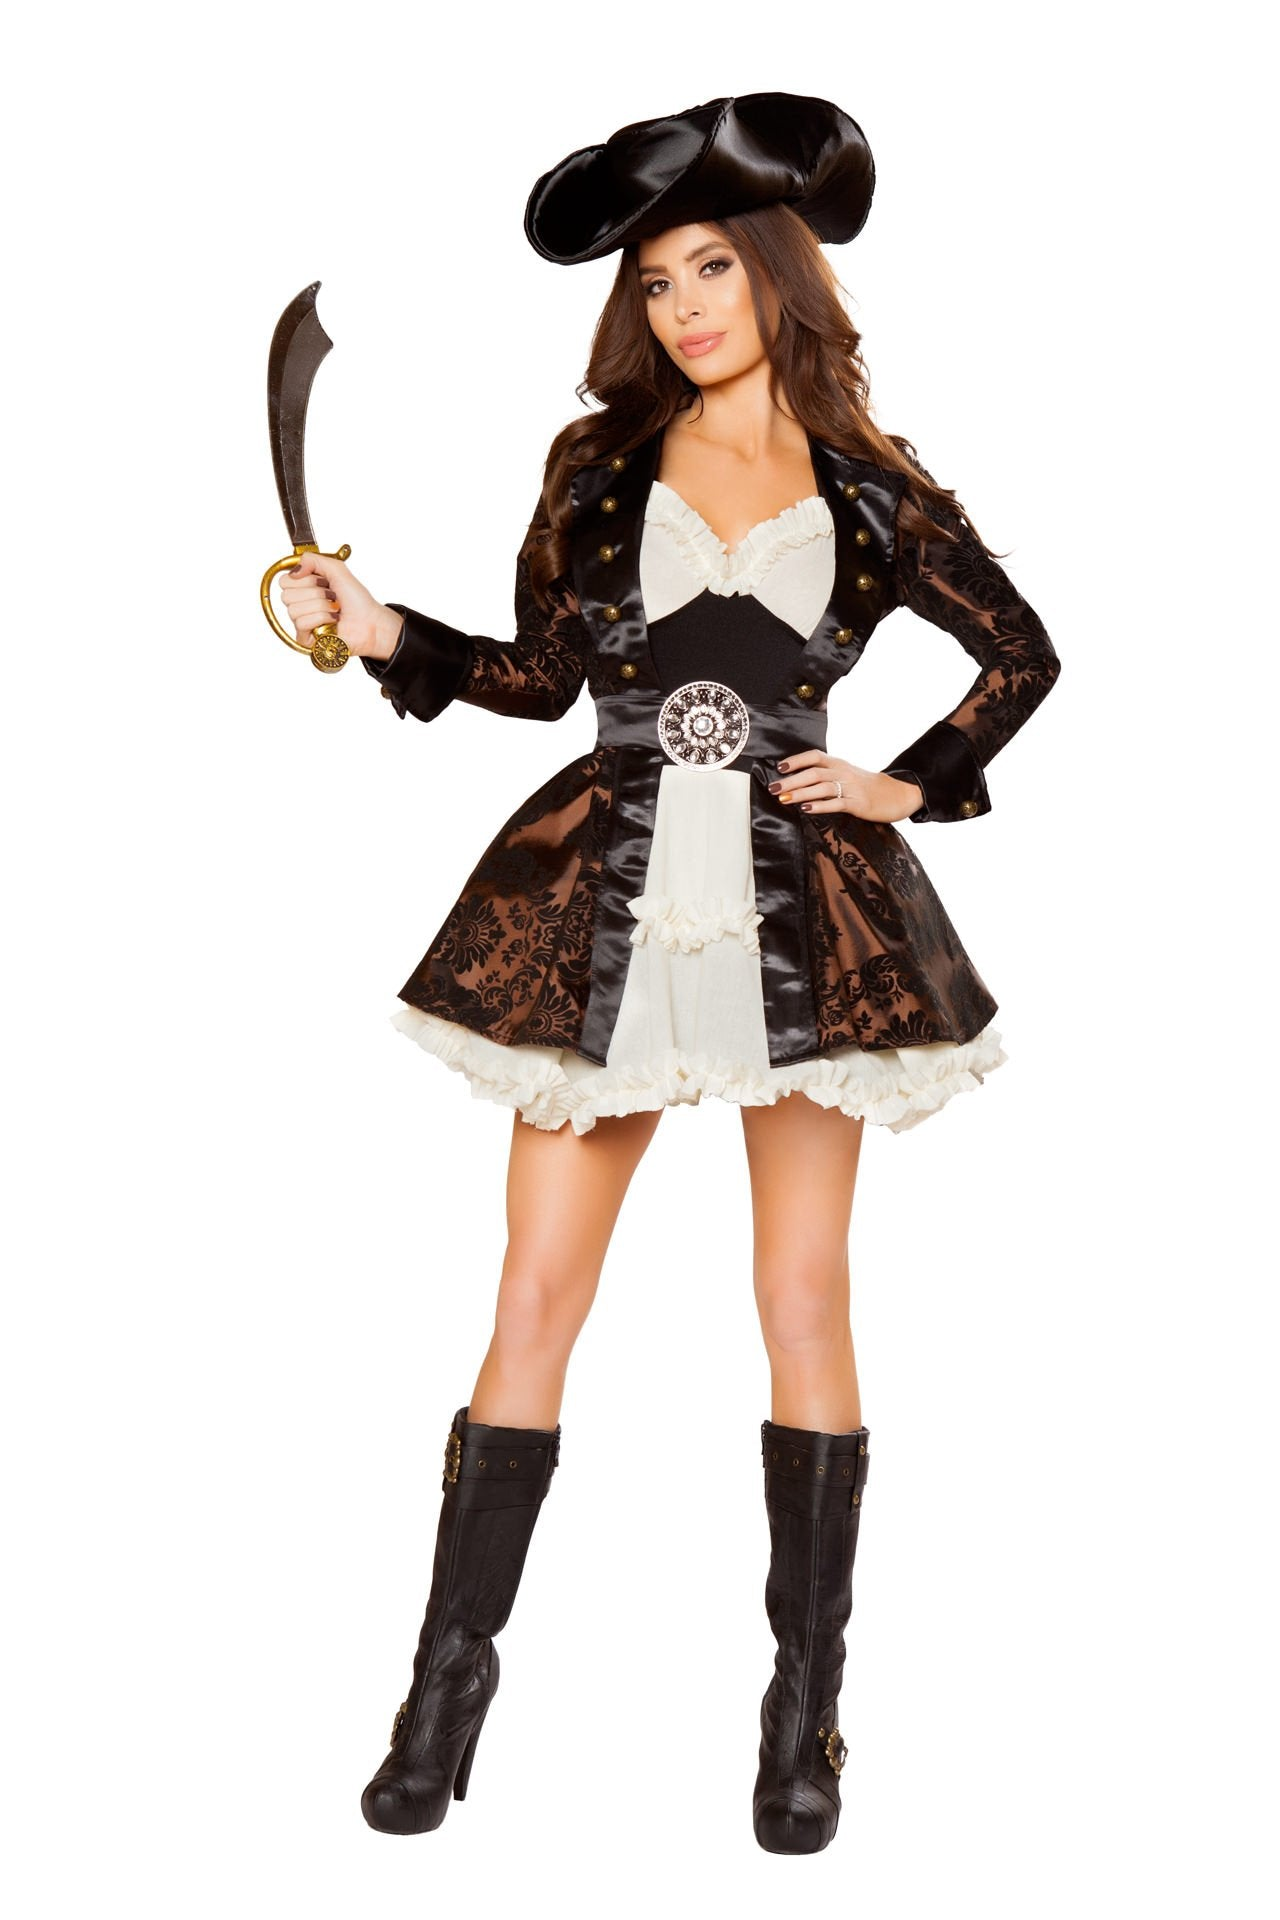 Buy 5pc Pirate Beauty from Rave Fix for $44.92 with Same Day Shipping Designed by Roma Costume 10071-AS-S